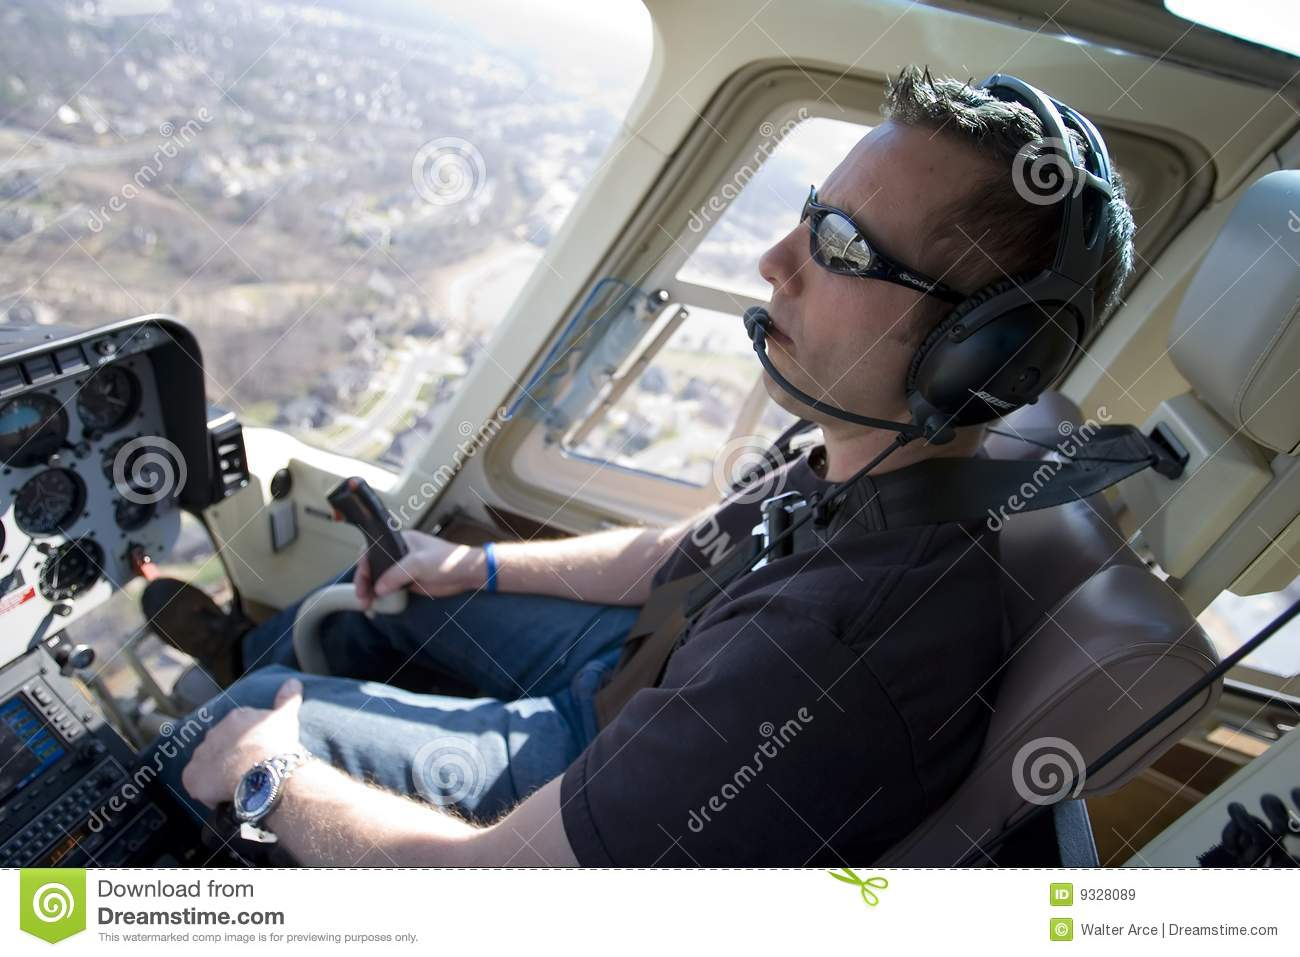 helicopter s prices with Royalty Free Stock Images Greg Biffle Pilots His Helicopter Image9328089 on Murrayayson moreover Palau Big Five Extension as well Stock Illustration Drone Copter Flight Delivering Box Cartoon Illustration Flying Post Office Image42593712 further Shelby Series 1 as well Royalty Free Stock Photography Green Dragon Image9071467.